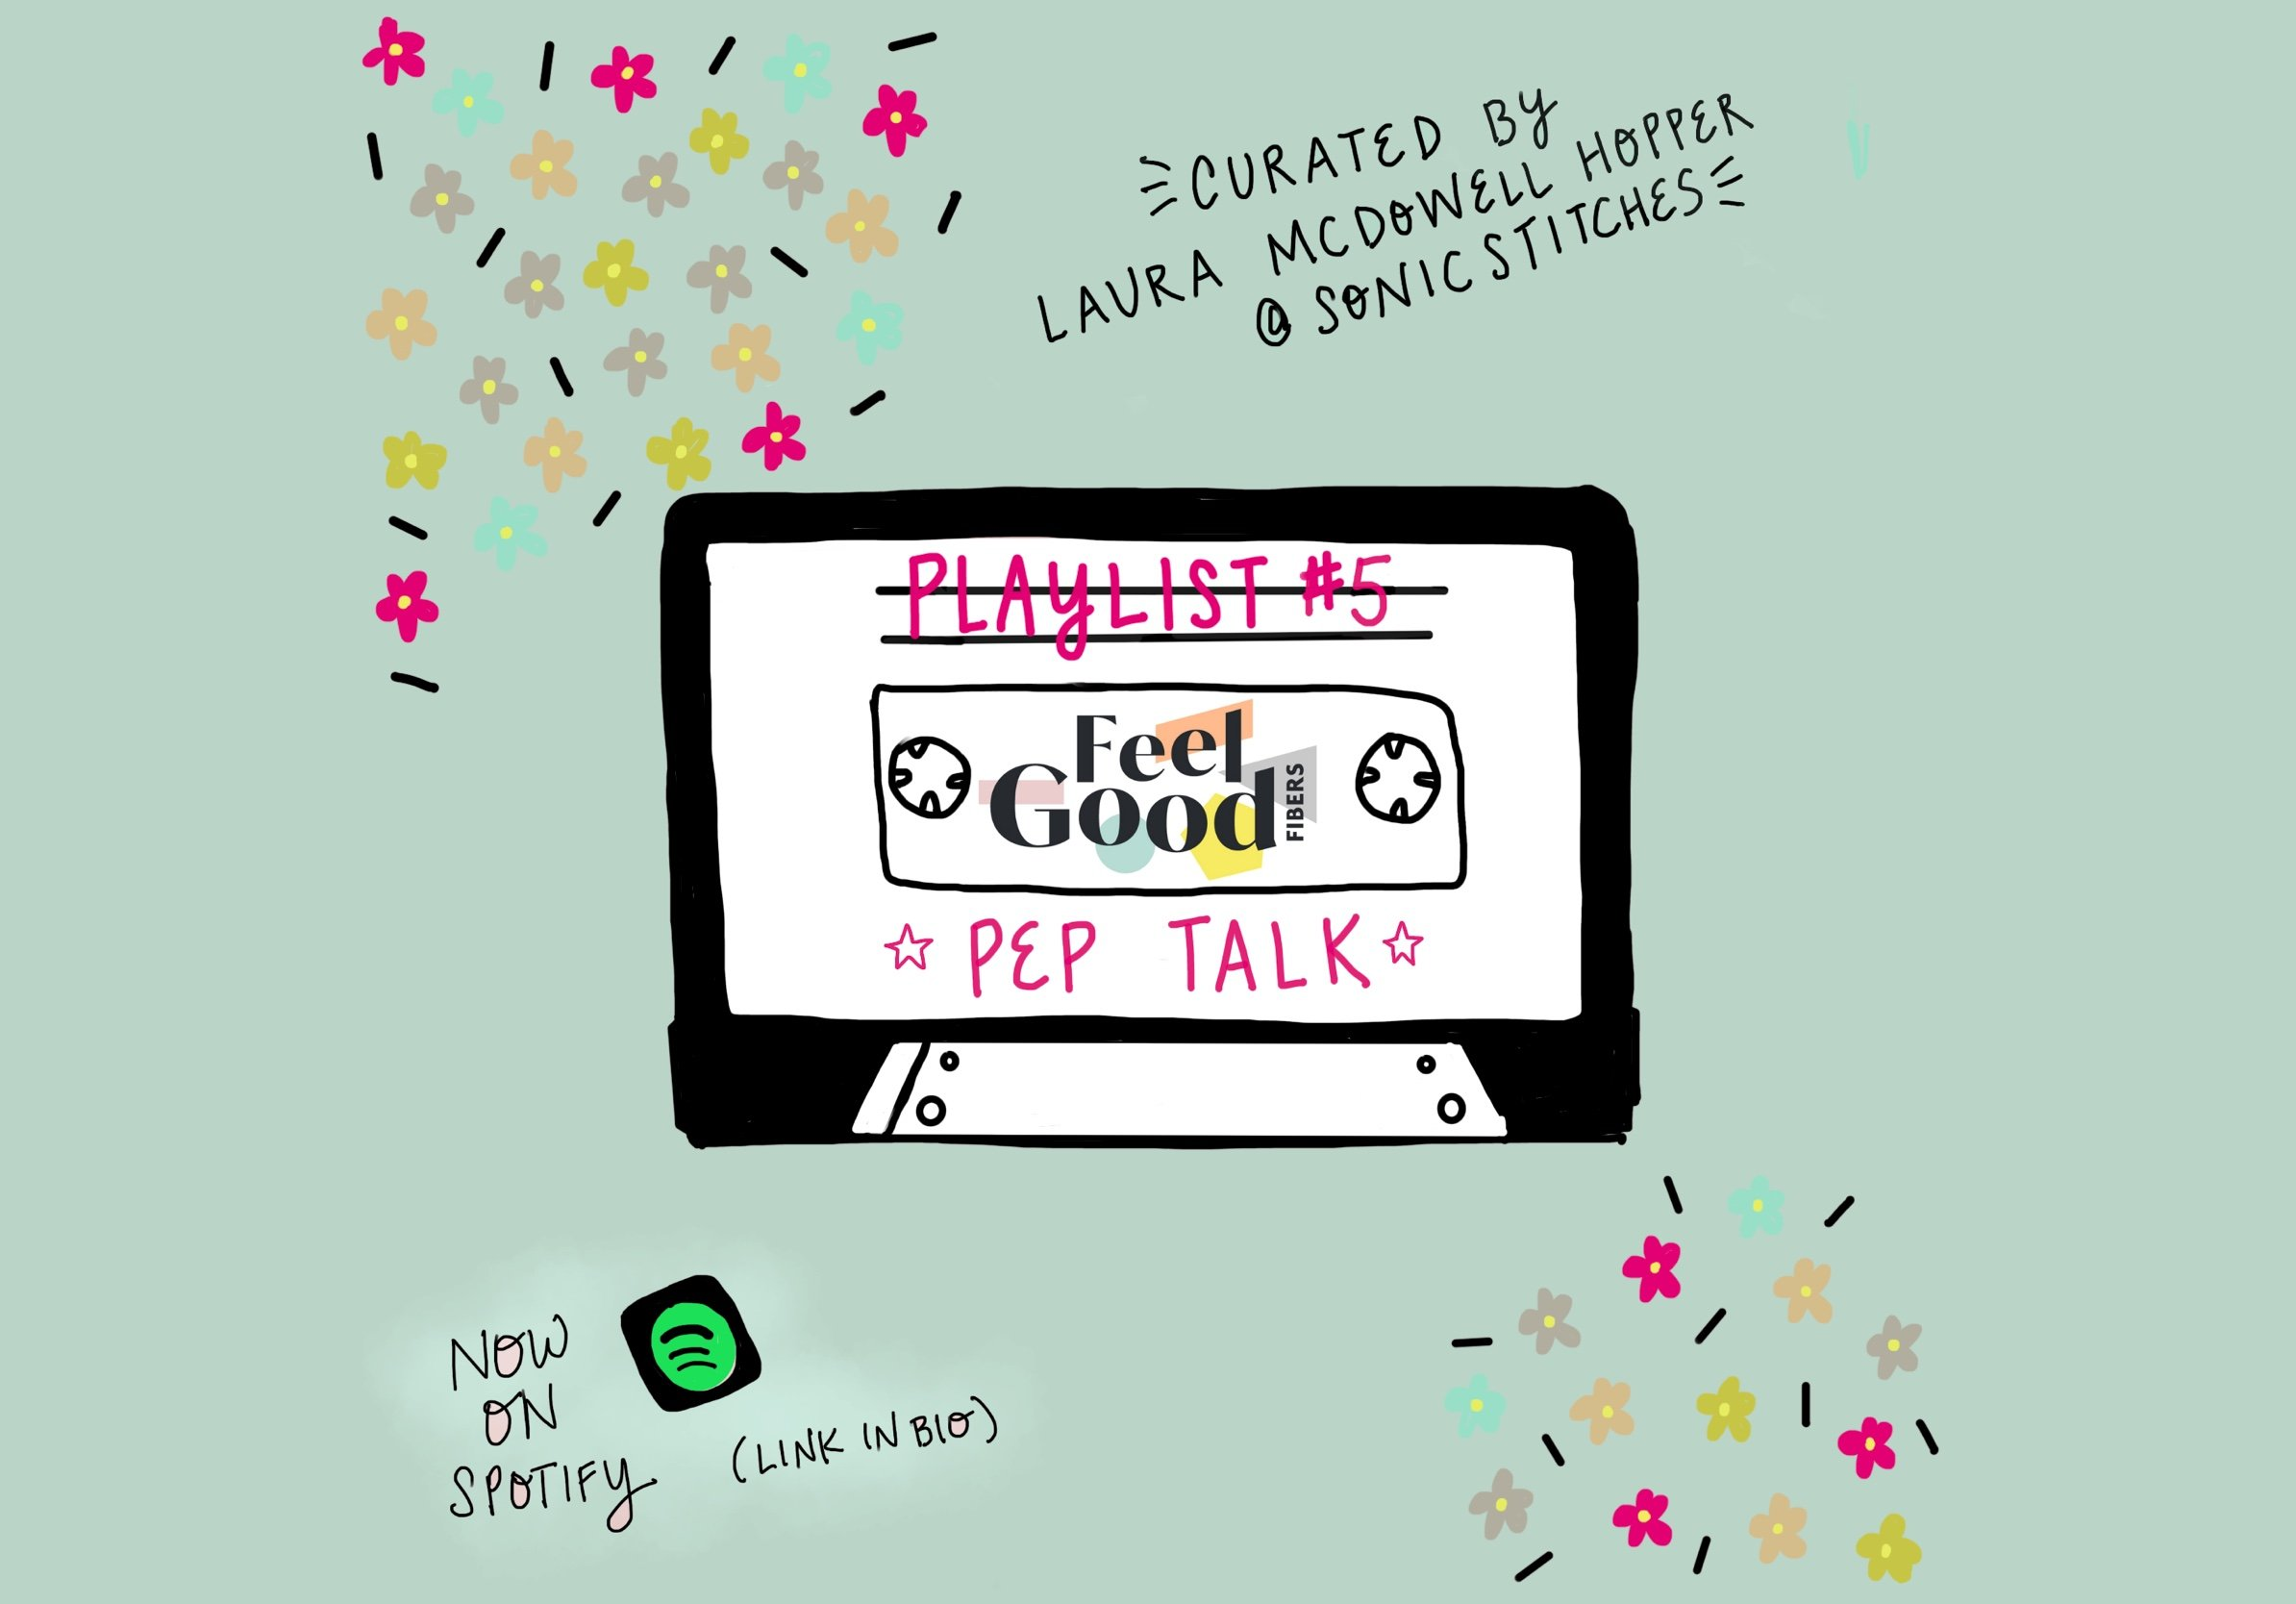 FGF Playlist #5: Pep Talk curated by Laura McDowell Hopper of Sonic Stitches for FeelGood Fibers